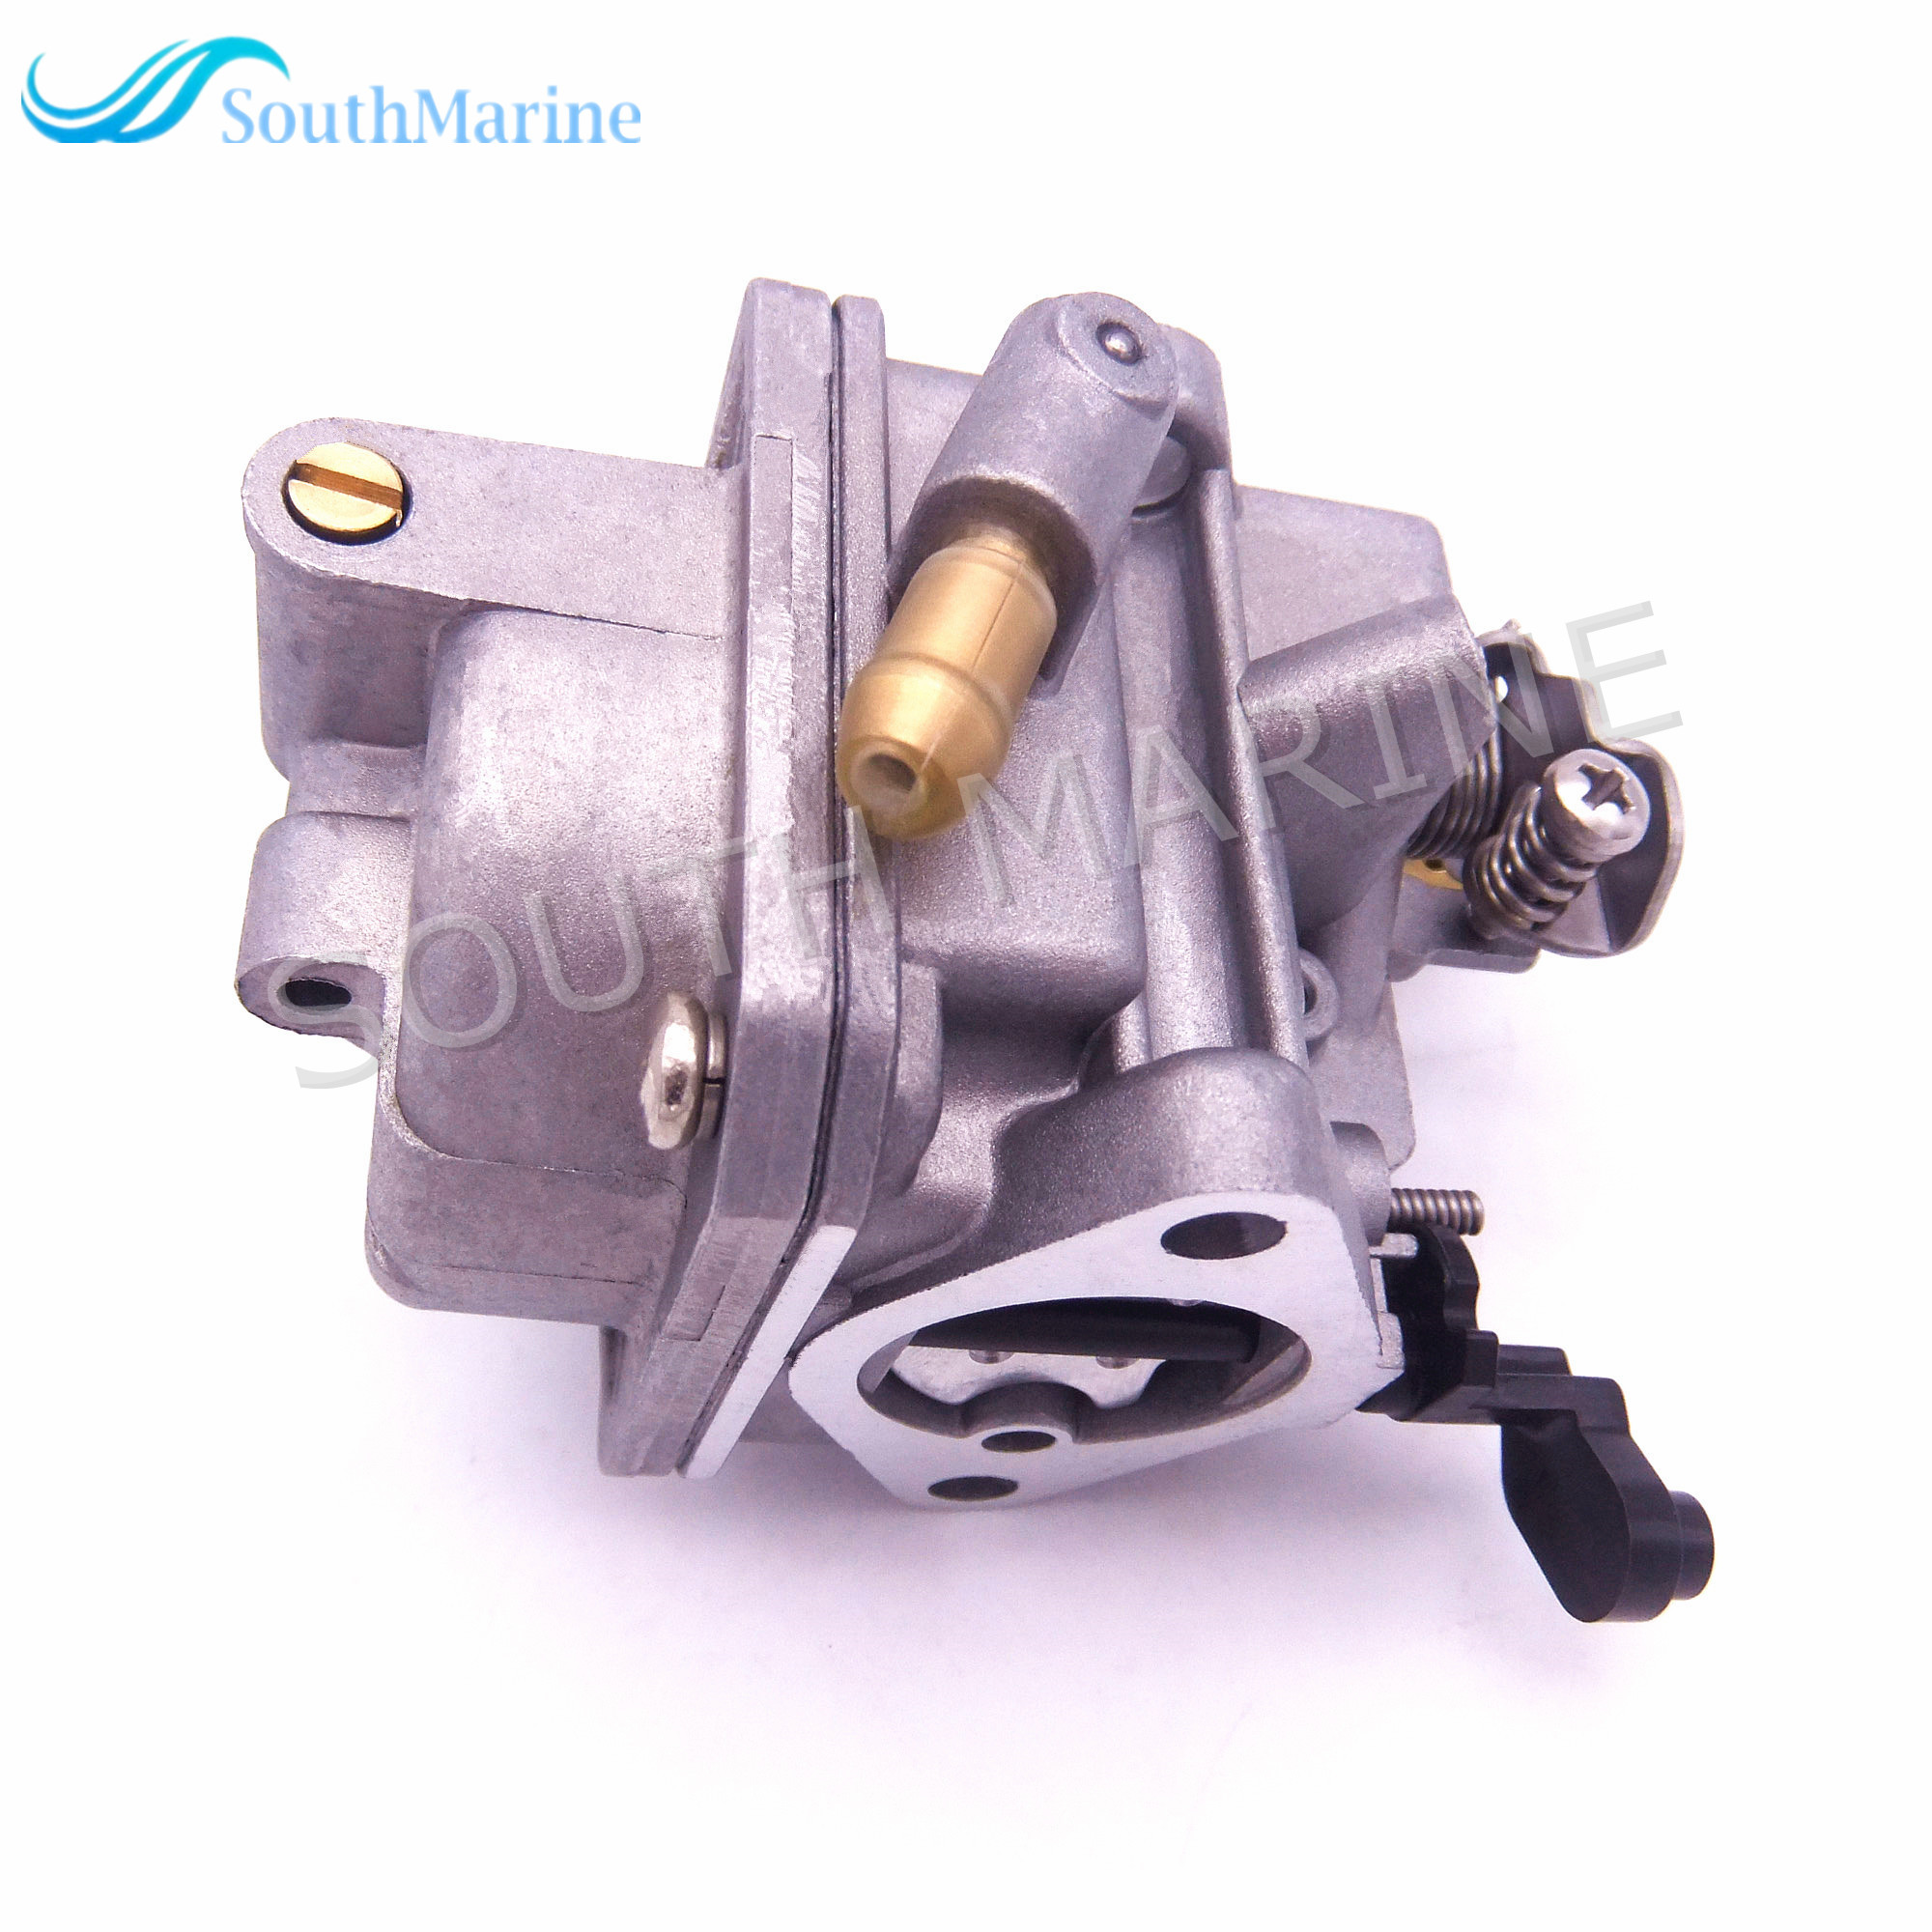 Boat Motor Carburetor Assy 6BX-14301-10 6BX-14301-11 6BX-14301-00 for Yamaha 4-stroke F6 Outboard Engine 66m 14301 11 66m 14301 00 carburetor assy for yamaha 4 stroke 15hp f15 outboard motors